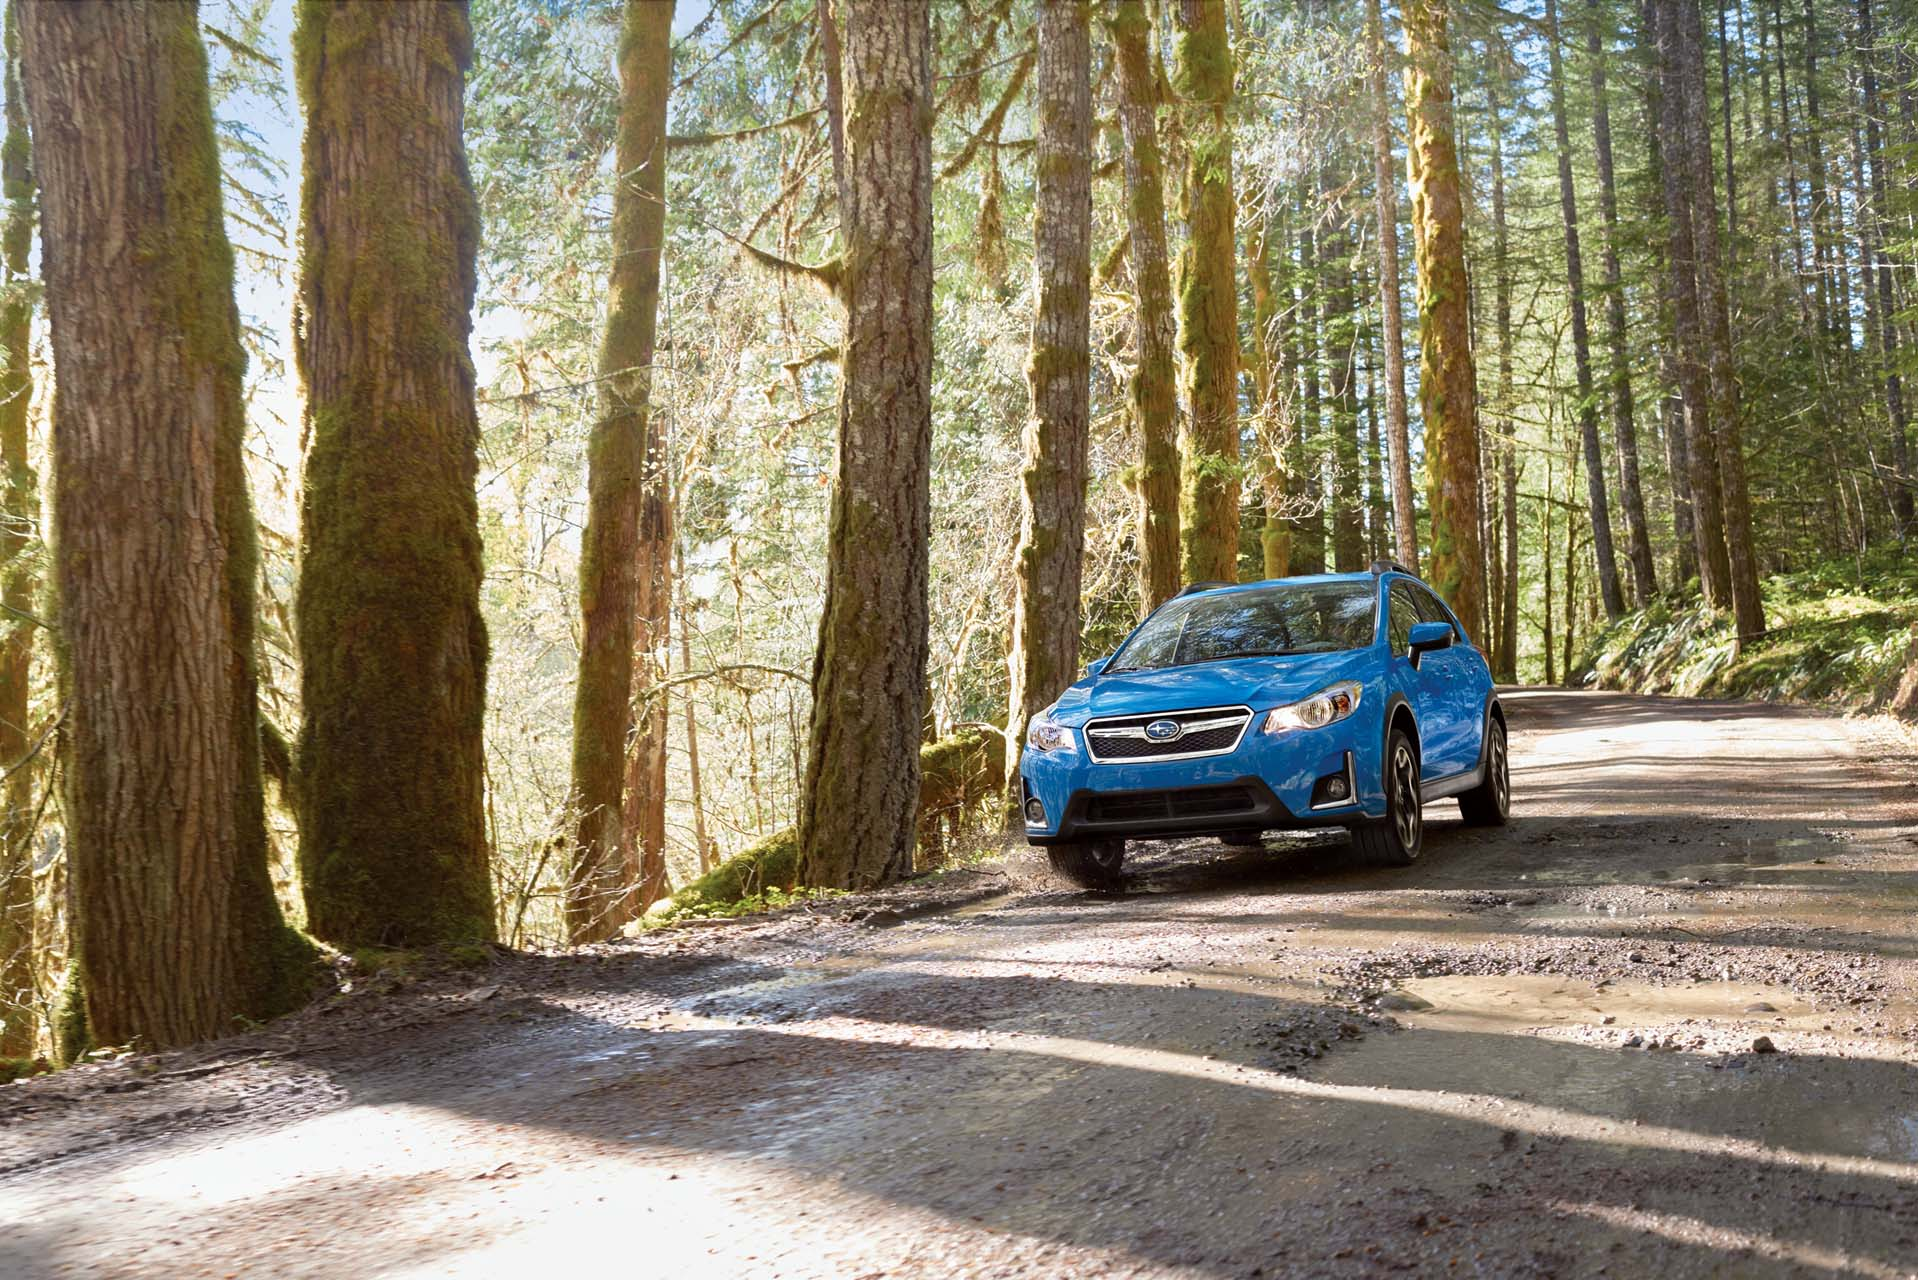 2017 Subaru Crosstrek Safety Review and Crash Test Ratings  The